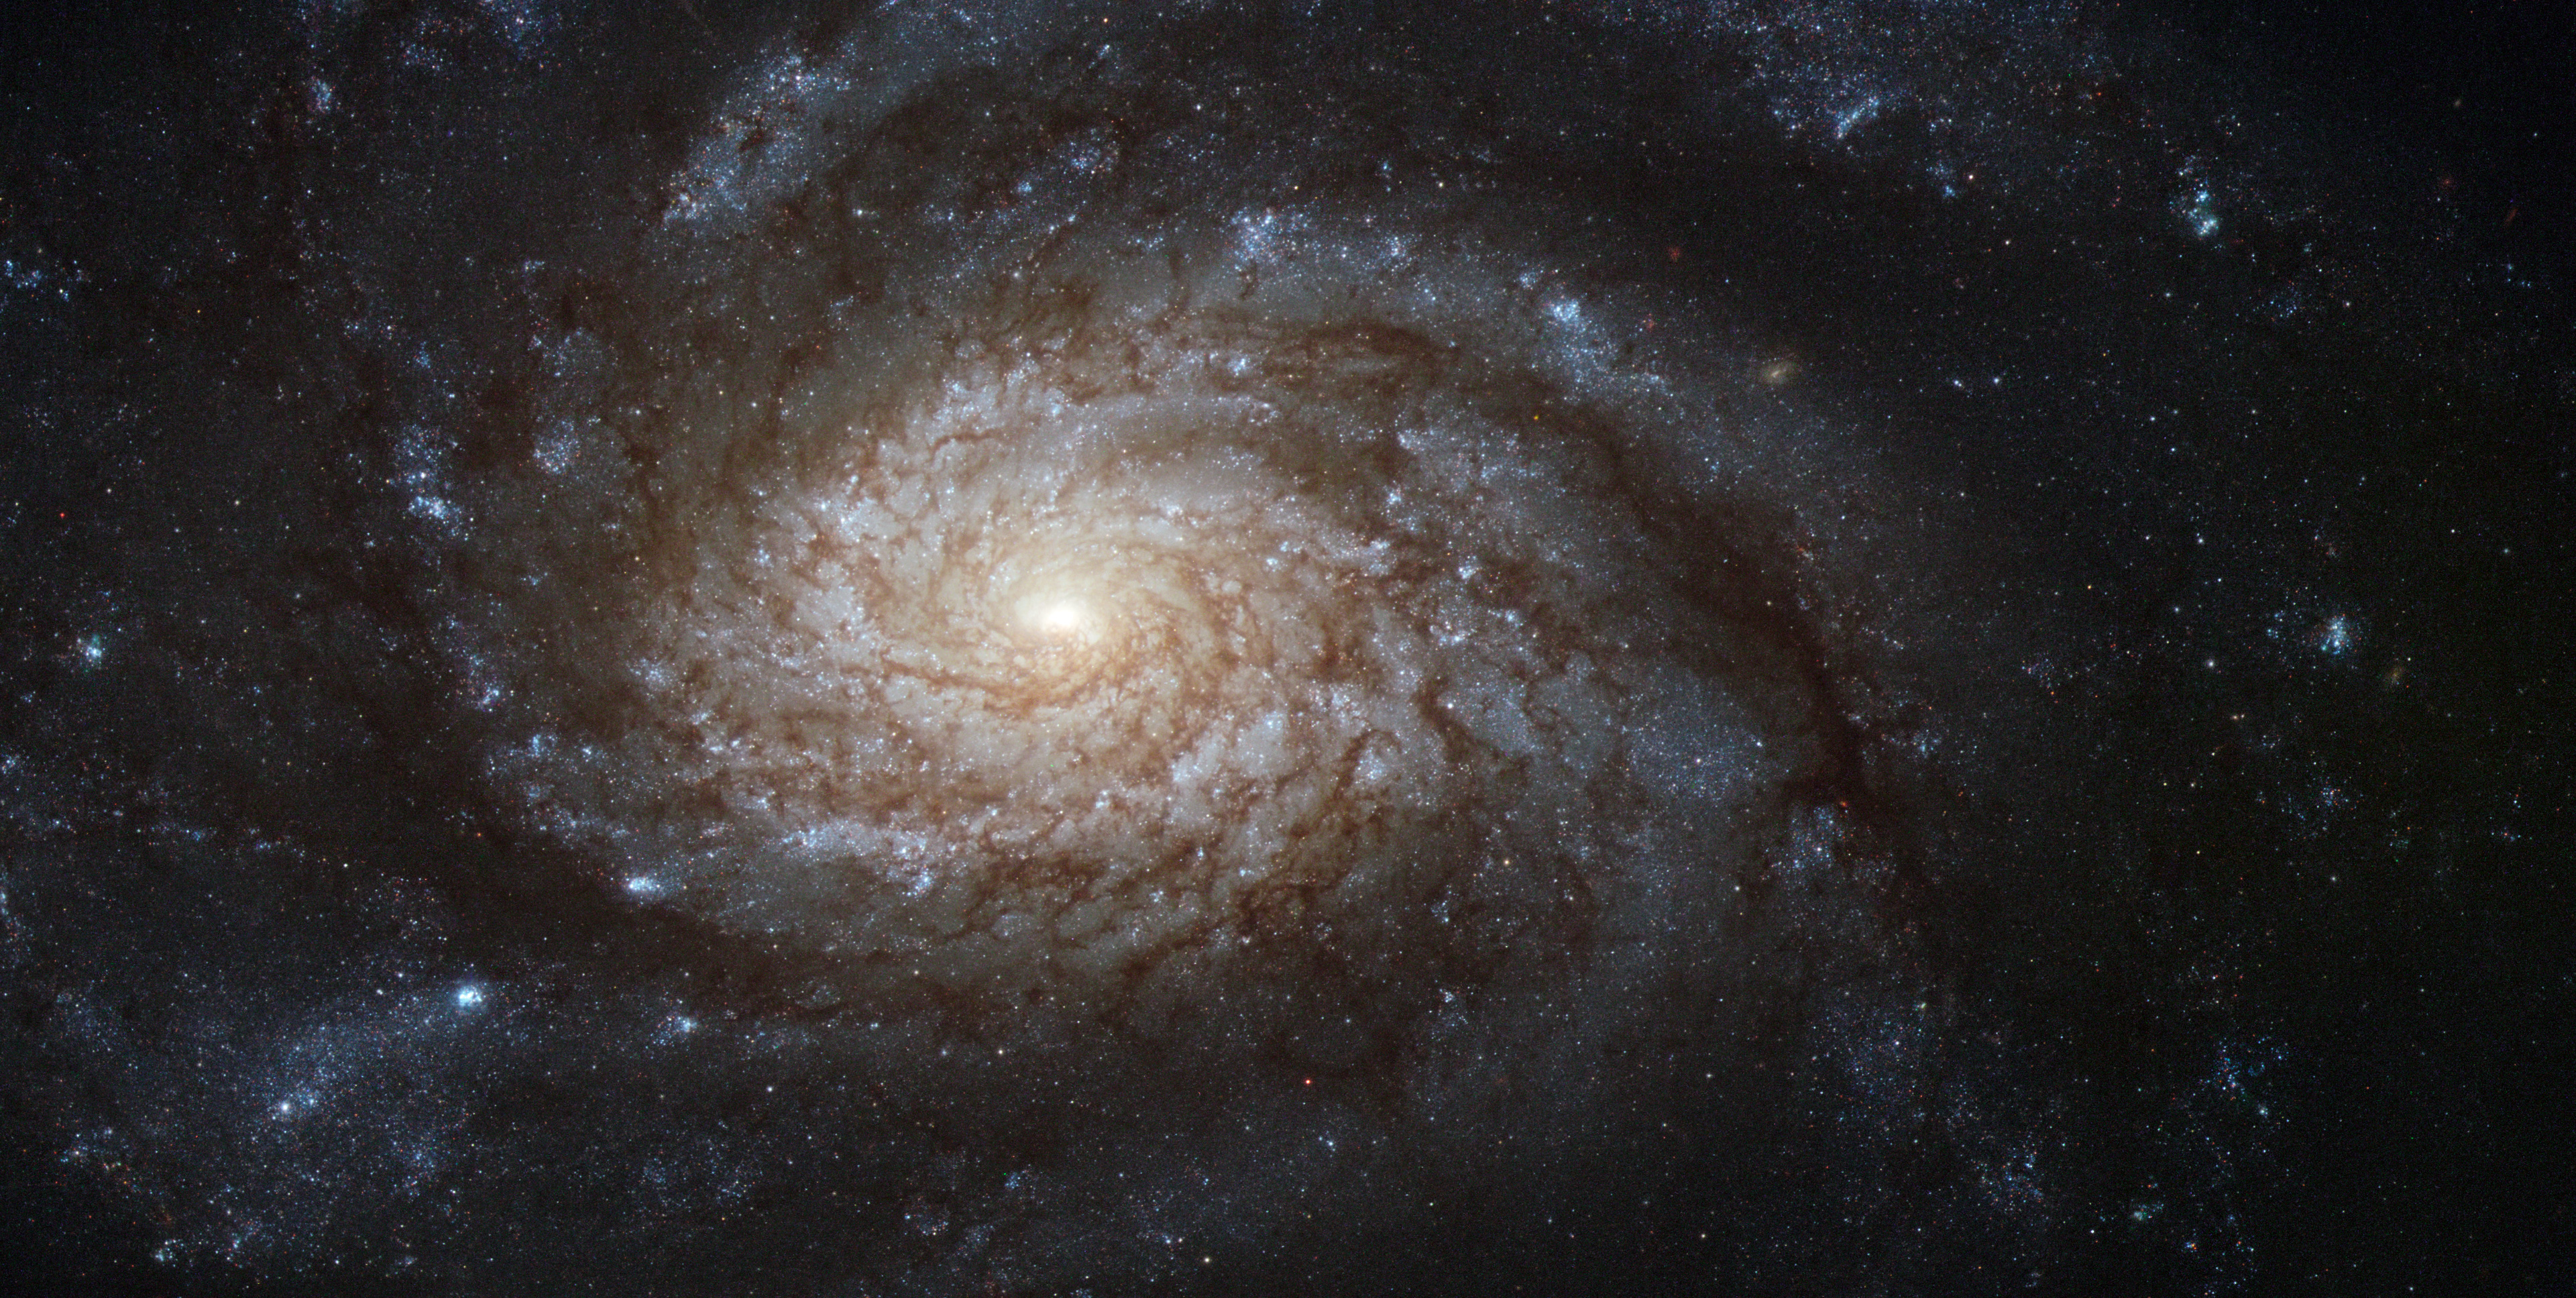 hubble telescope images of space - photo #24